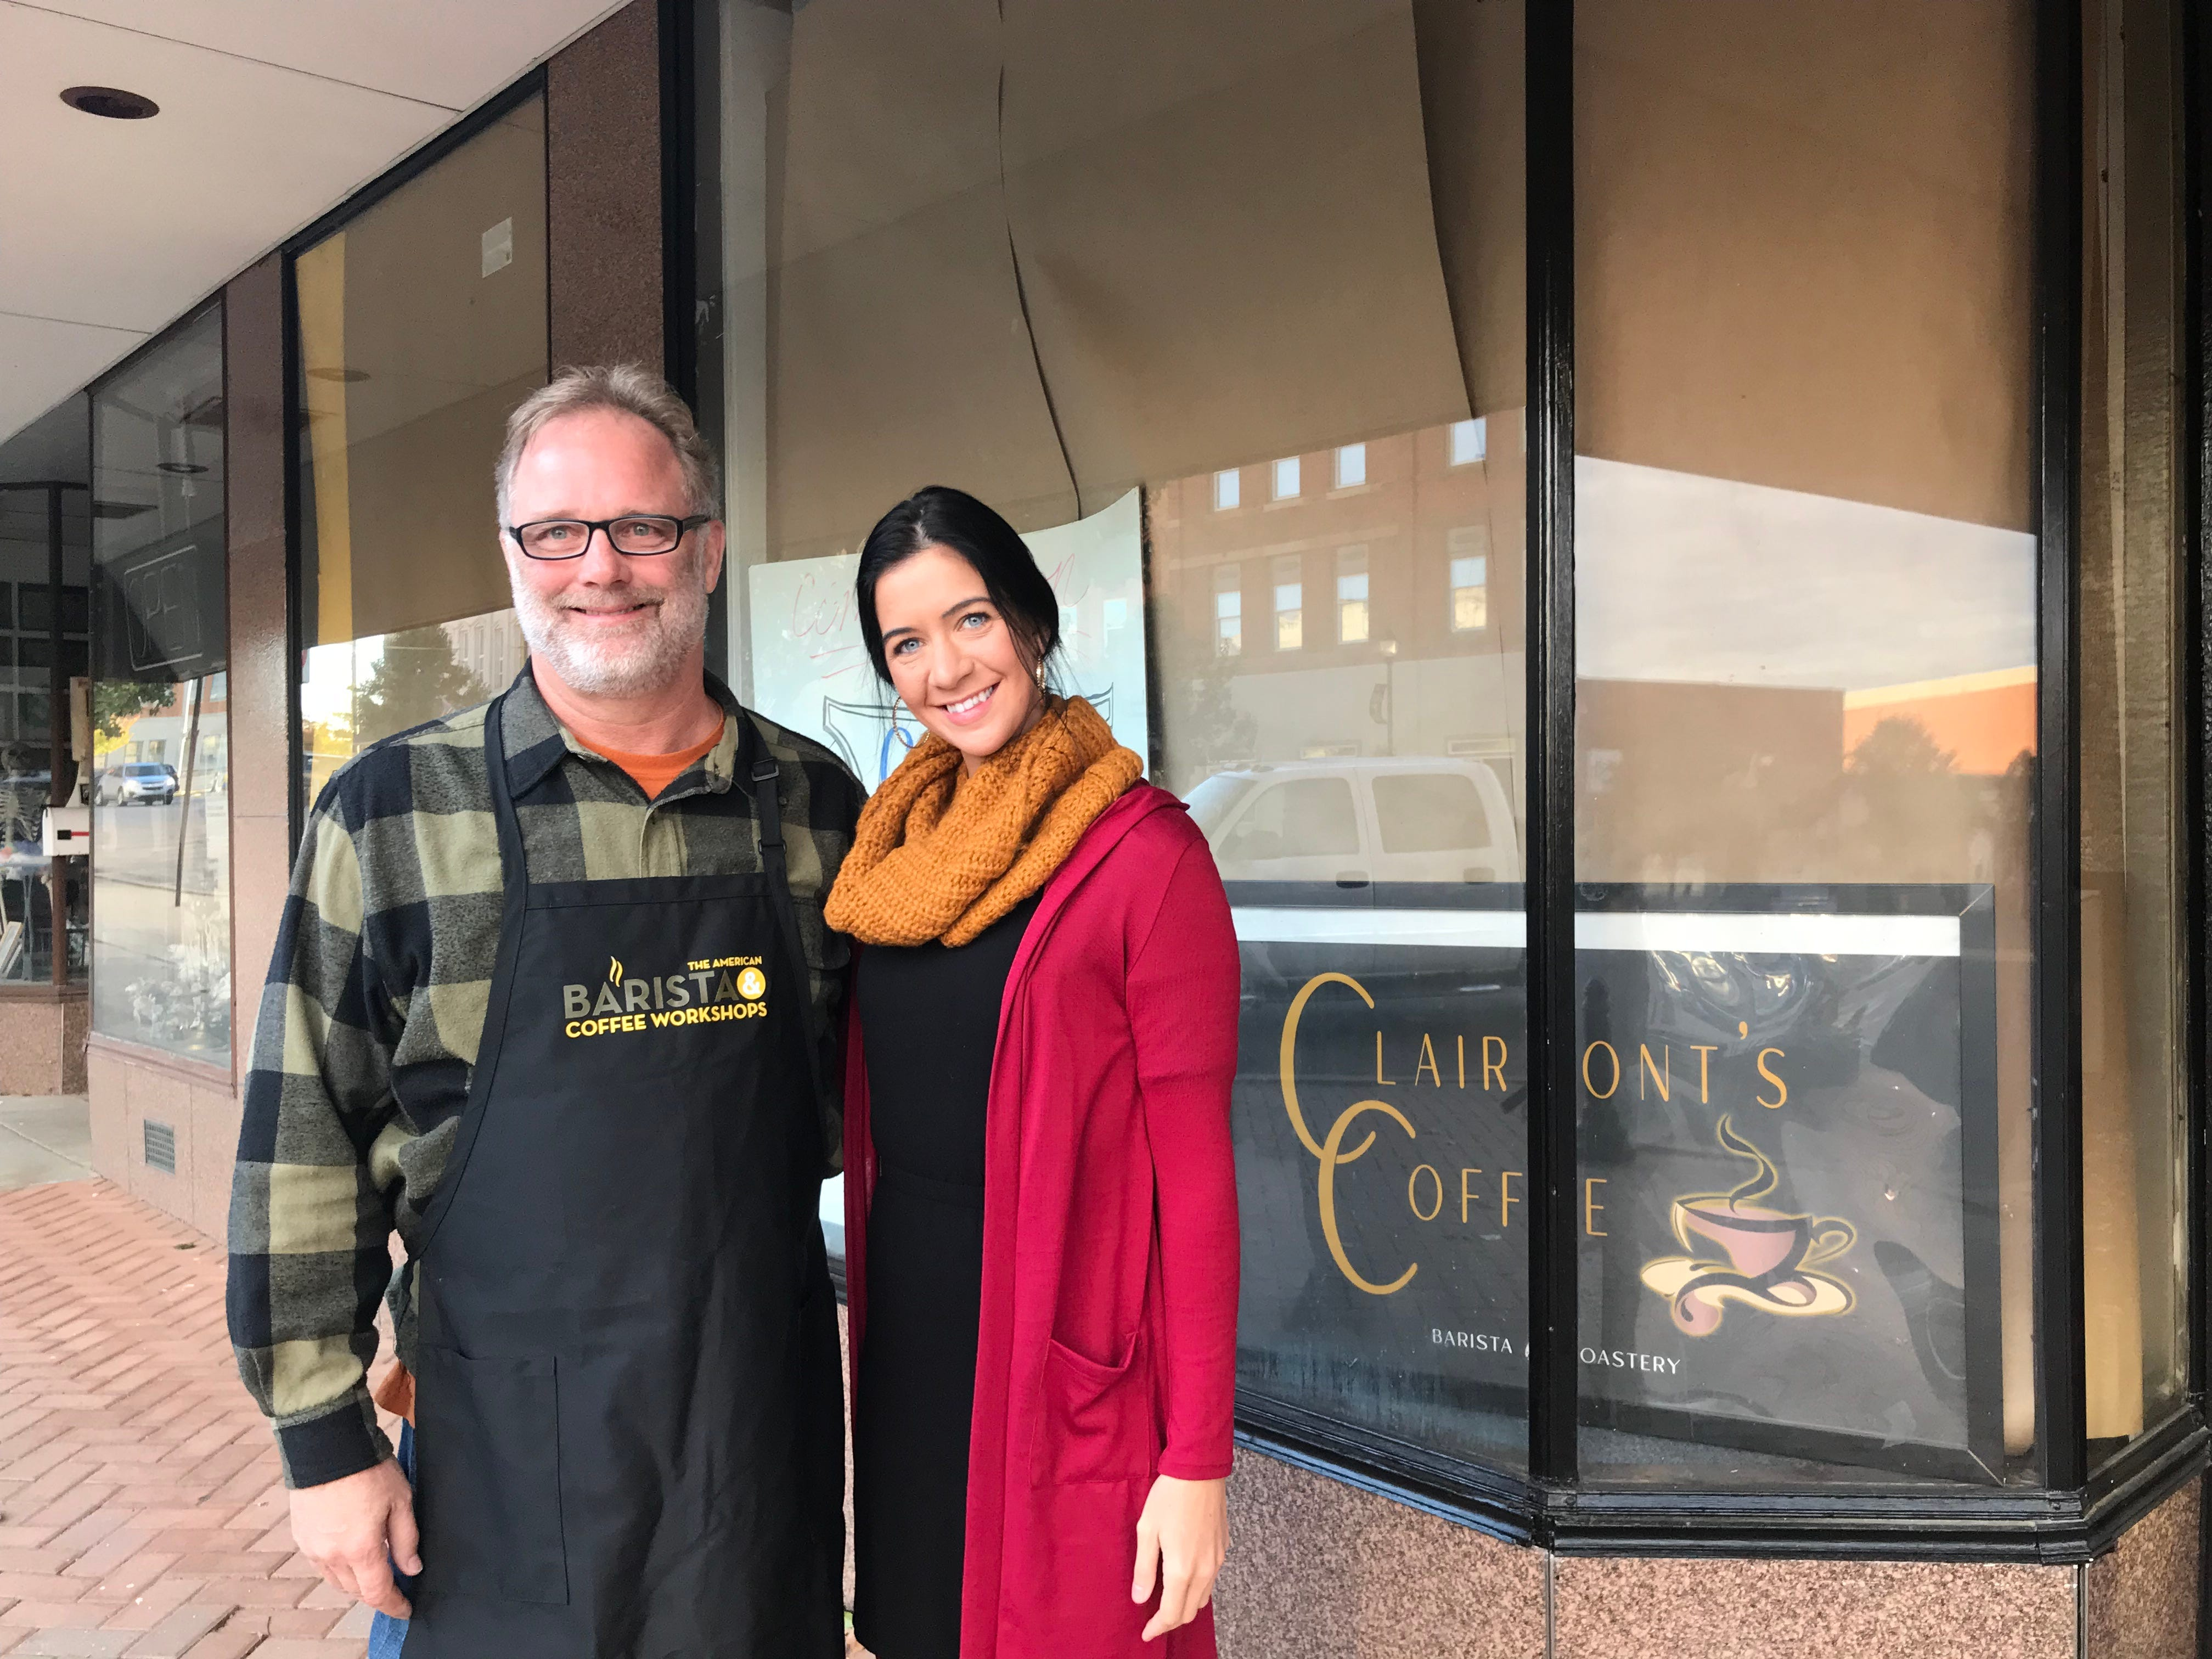 Craft coffee and Cops & Doughnuts is coming to St. Johns